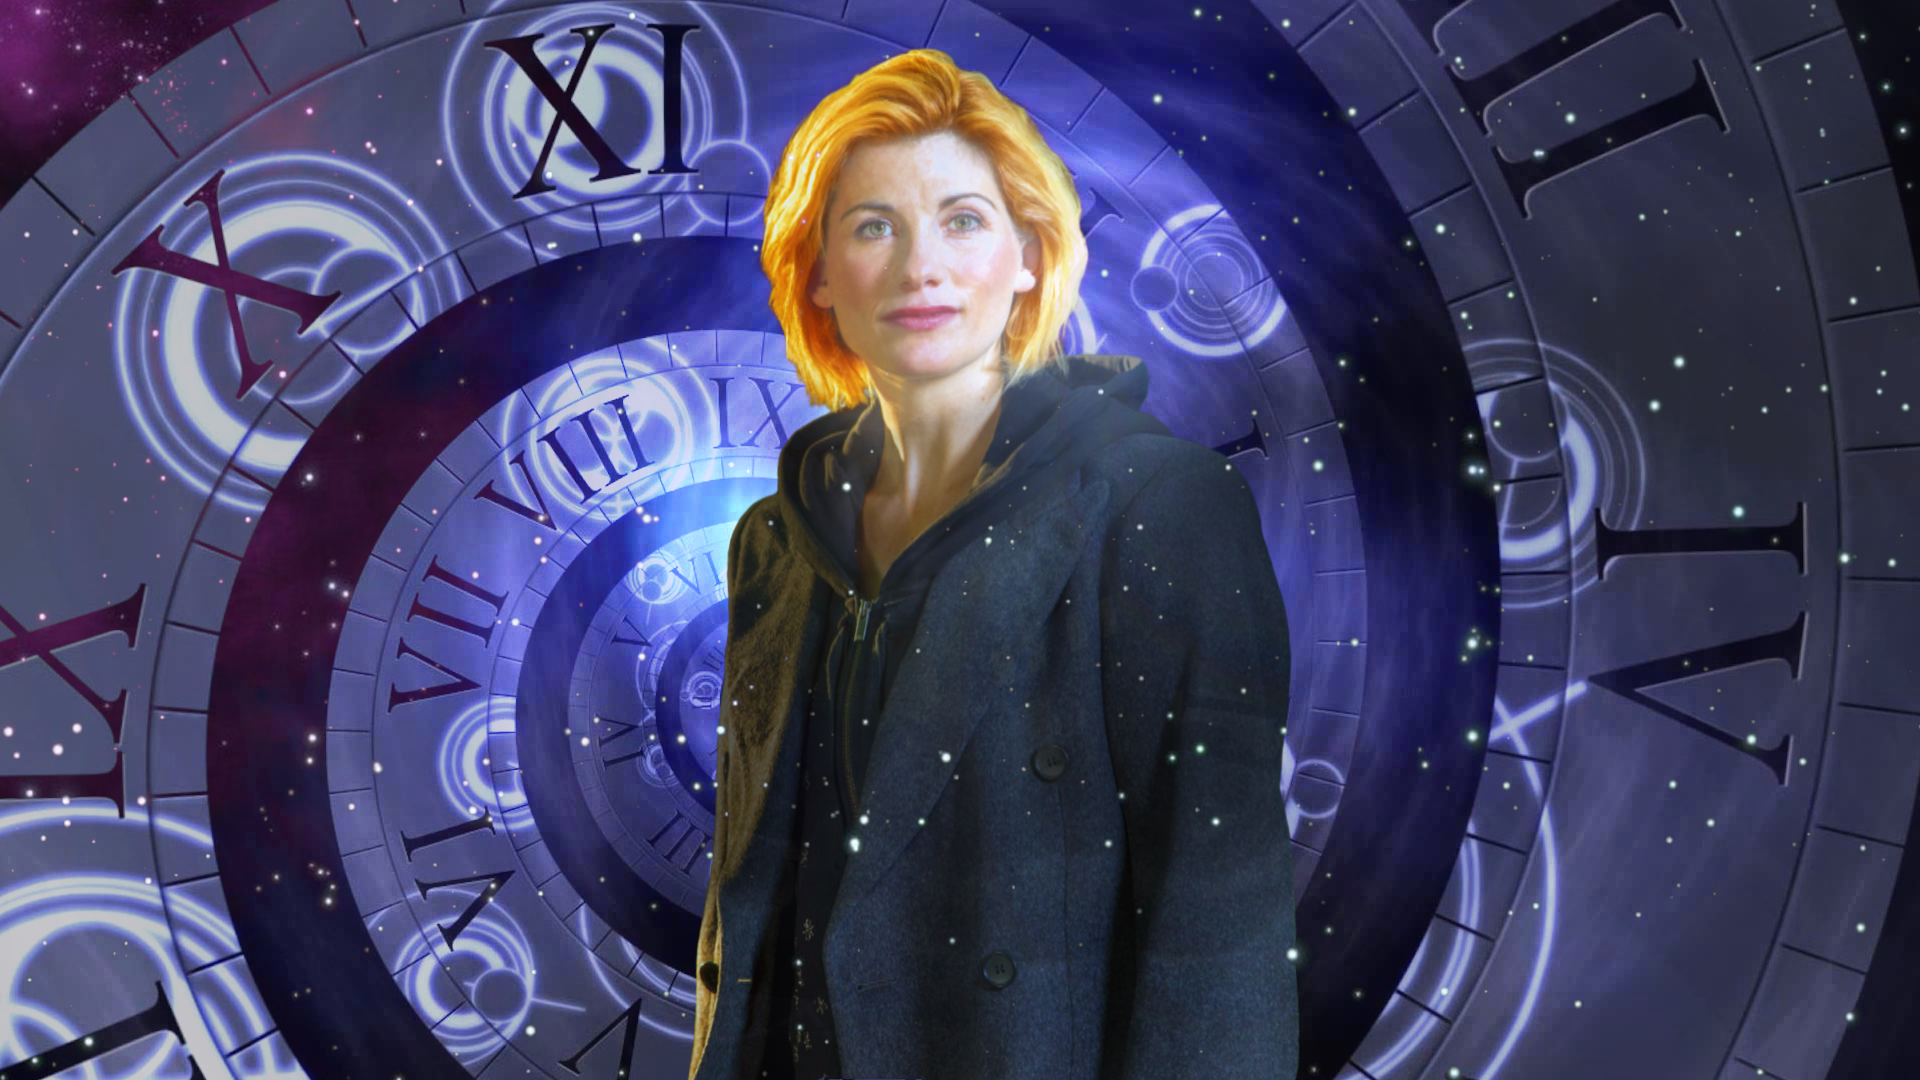 Jodie Whittaker Doctor Who Wallpaper: Jodie Whittaker As The Thirteenth Doctor Take 2 By